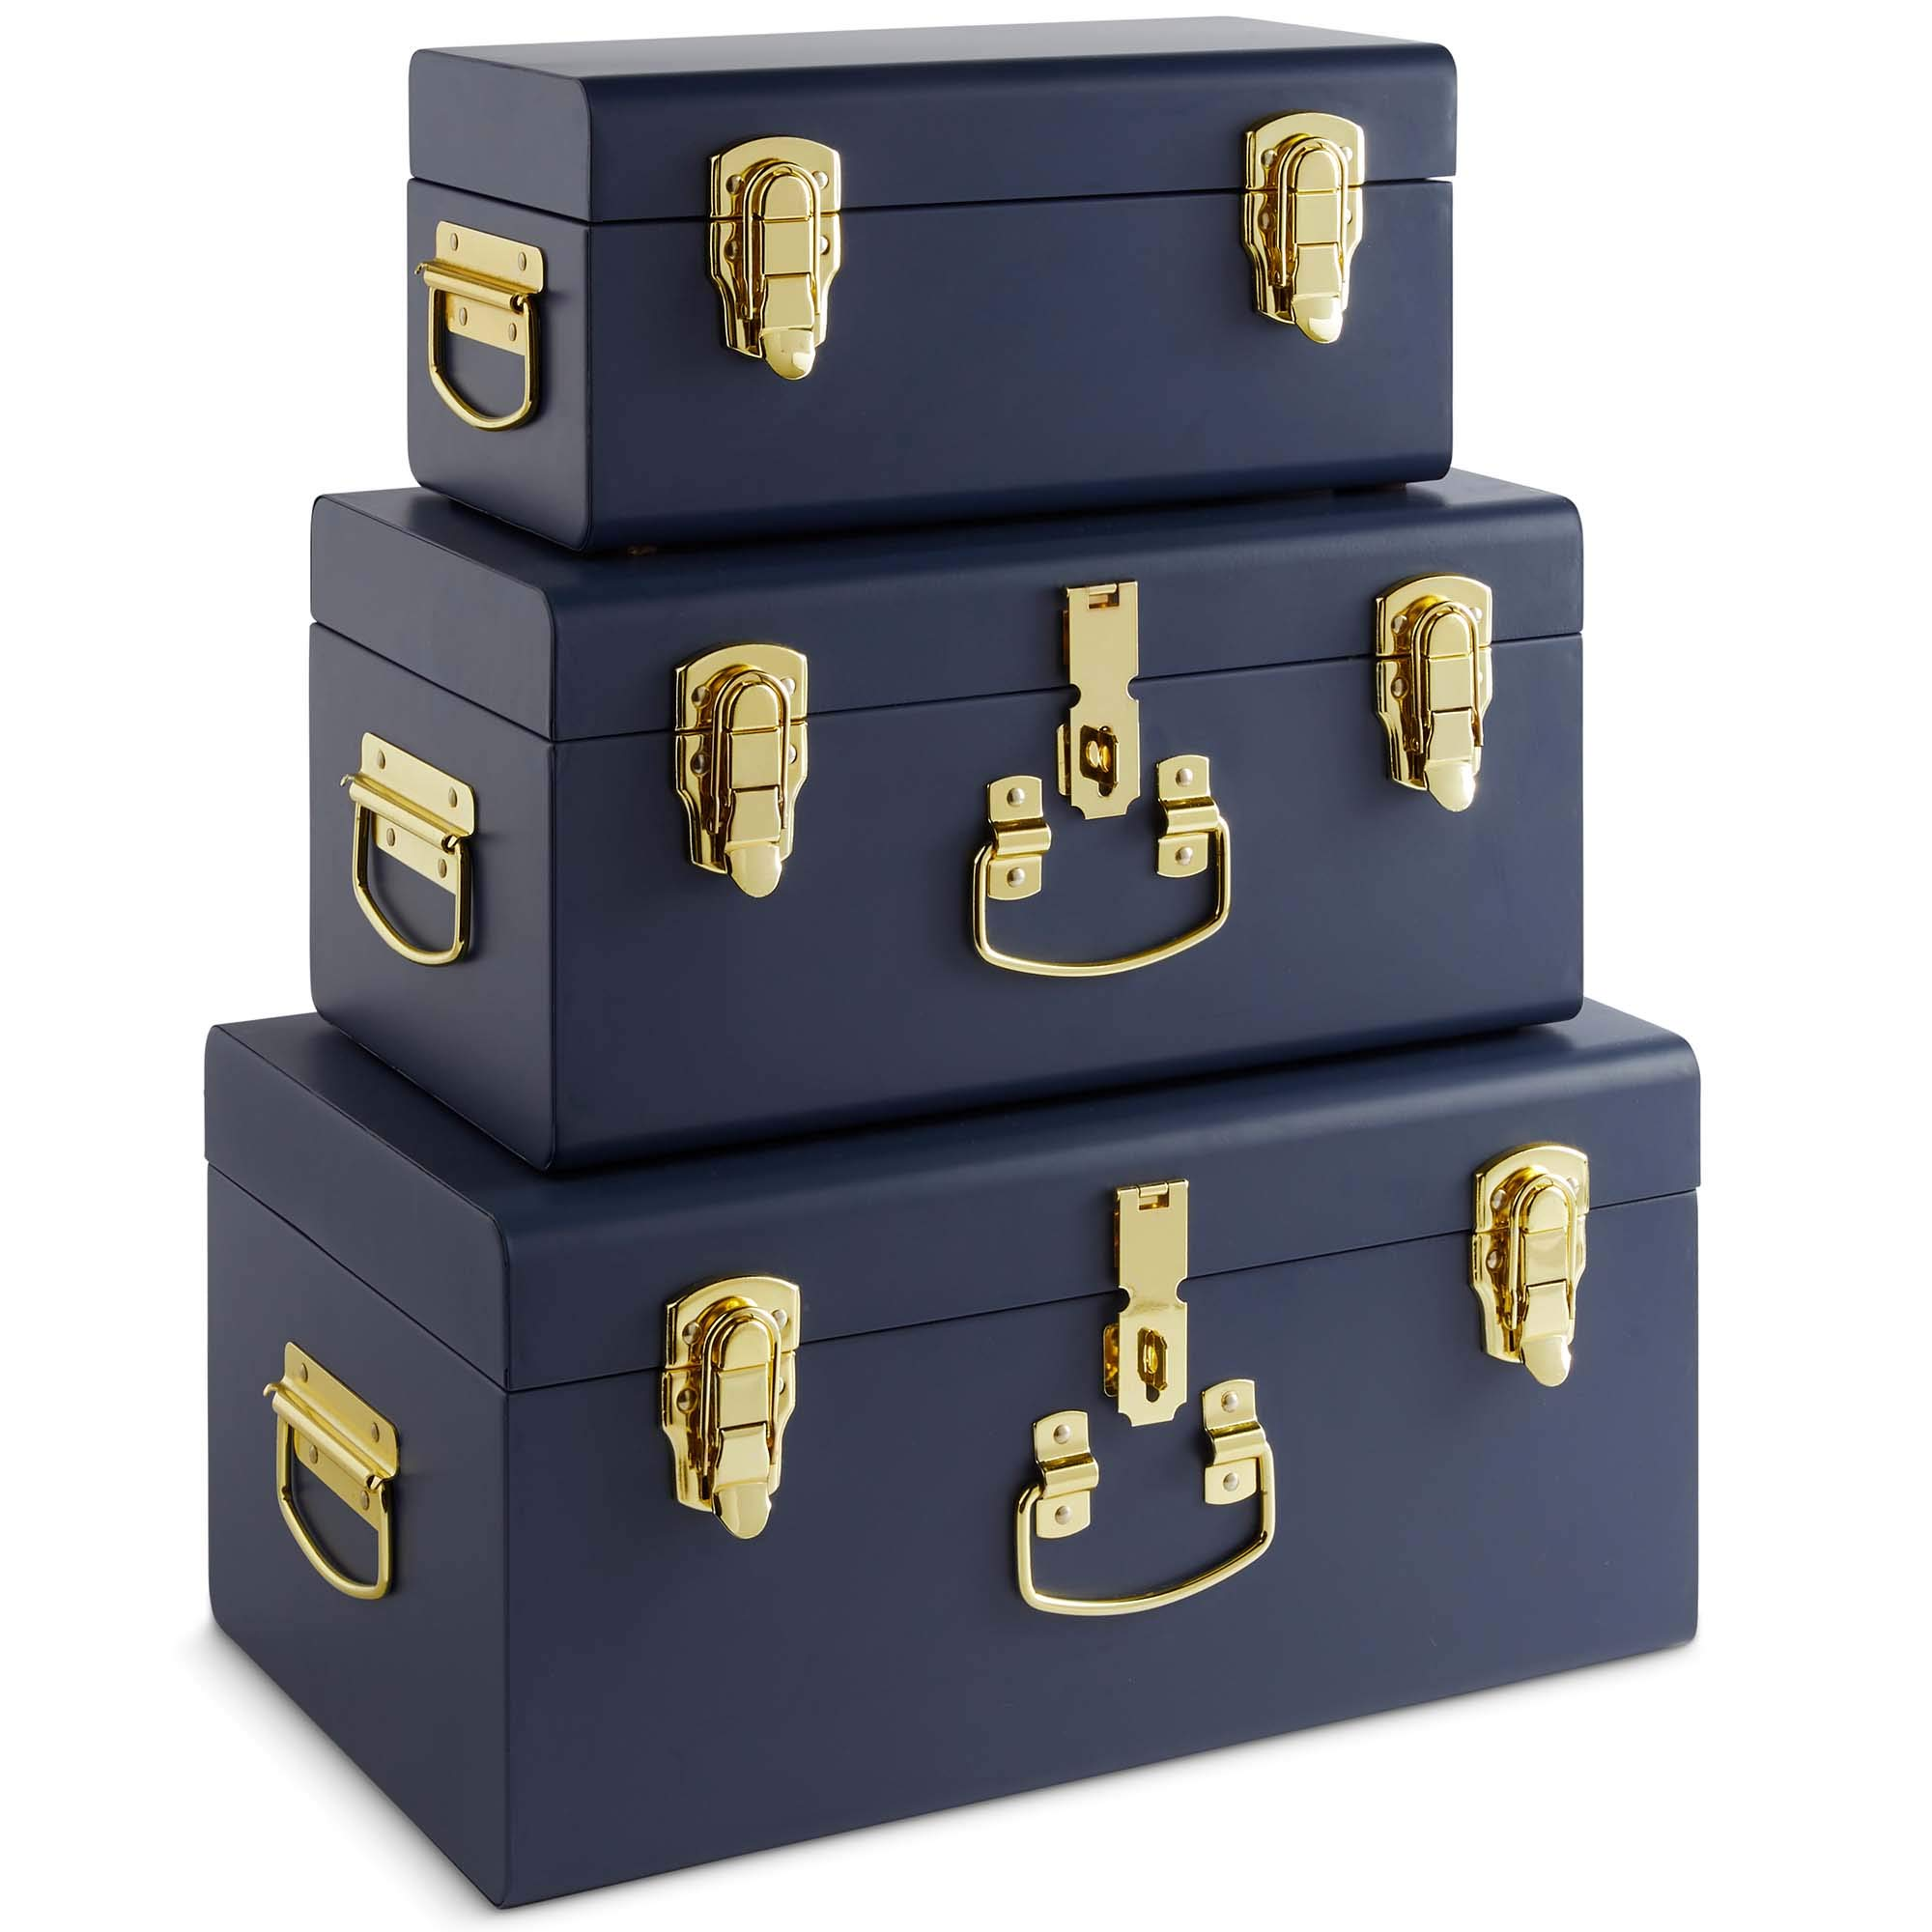 Beautify Set of 3 Navy Blue Vintage Metal Steel Storage Trunk Set Lockable and Decorative with Brass Handles - Bedroom Footlocker, College Dorm or Living Room Trunks by Beautify